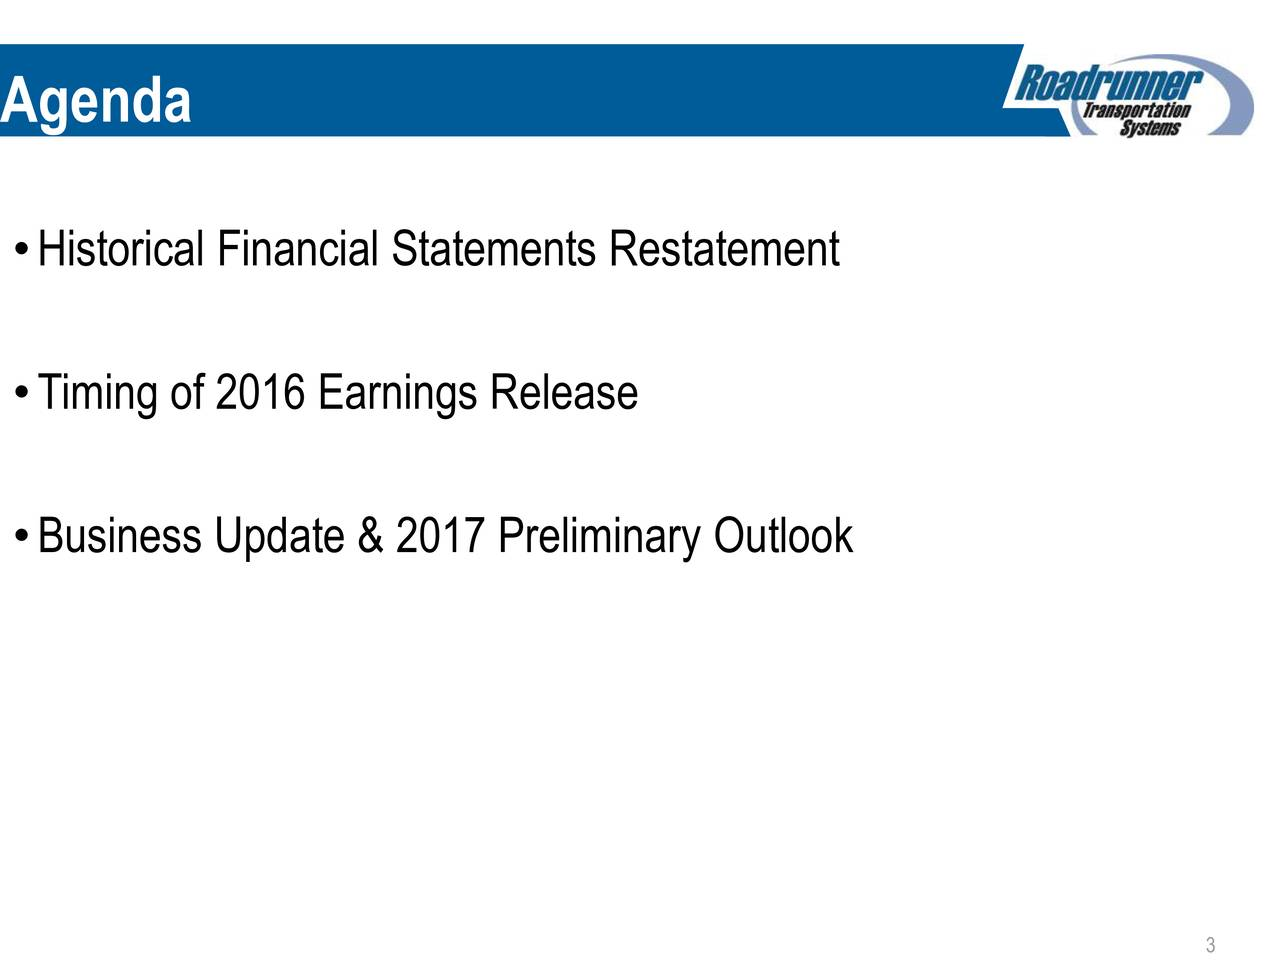 Historical Financial Statements Restatement Timing of 2016 Earnings Release Business Update & 2017 Preliminary Outlook